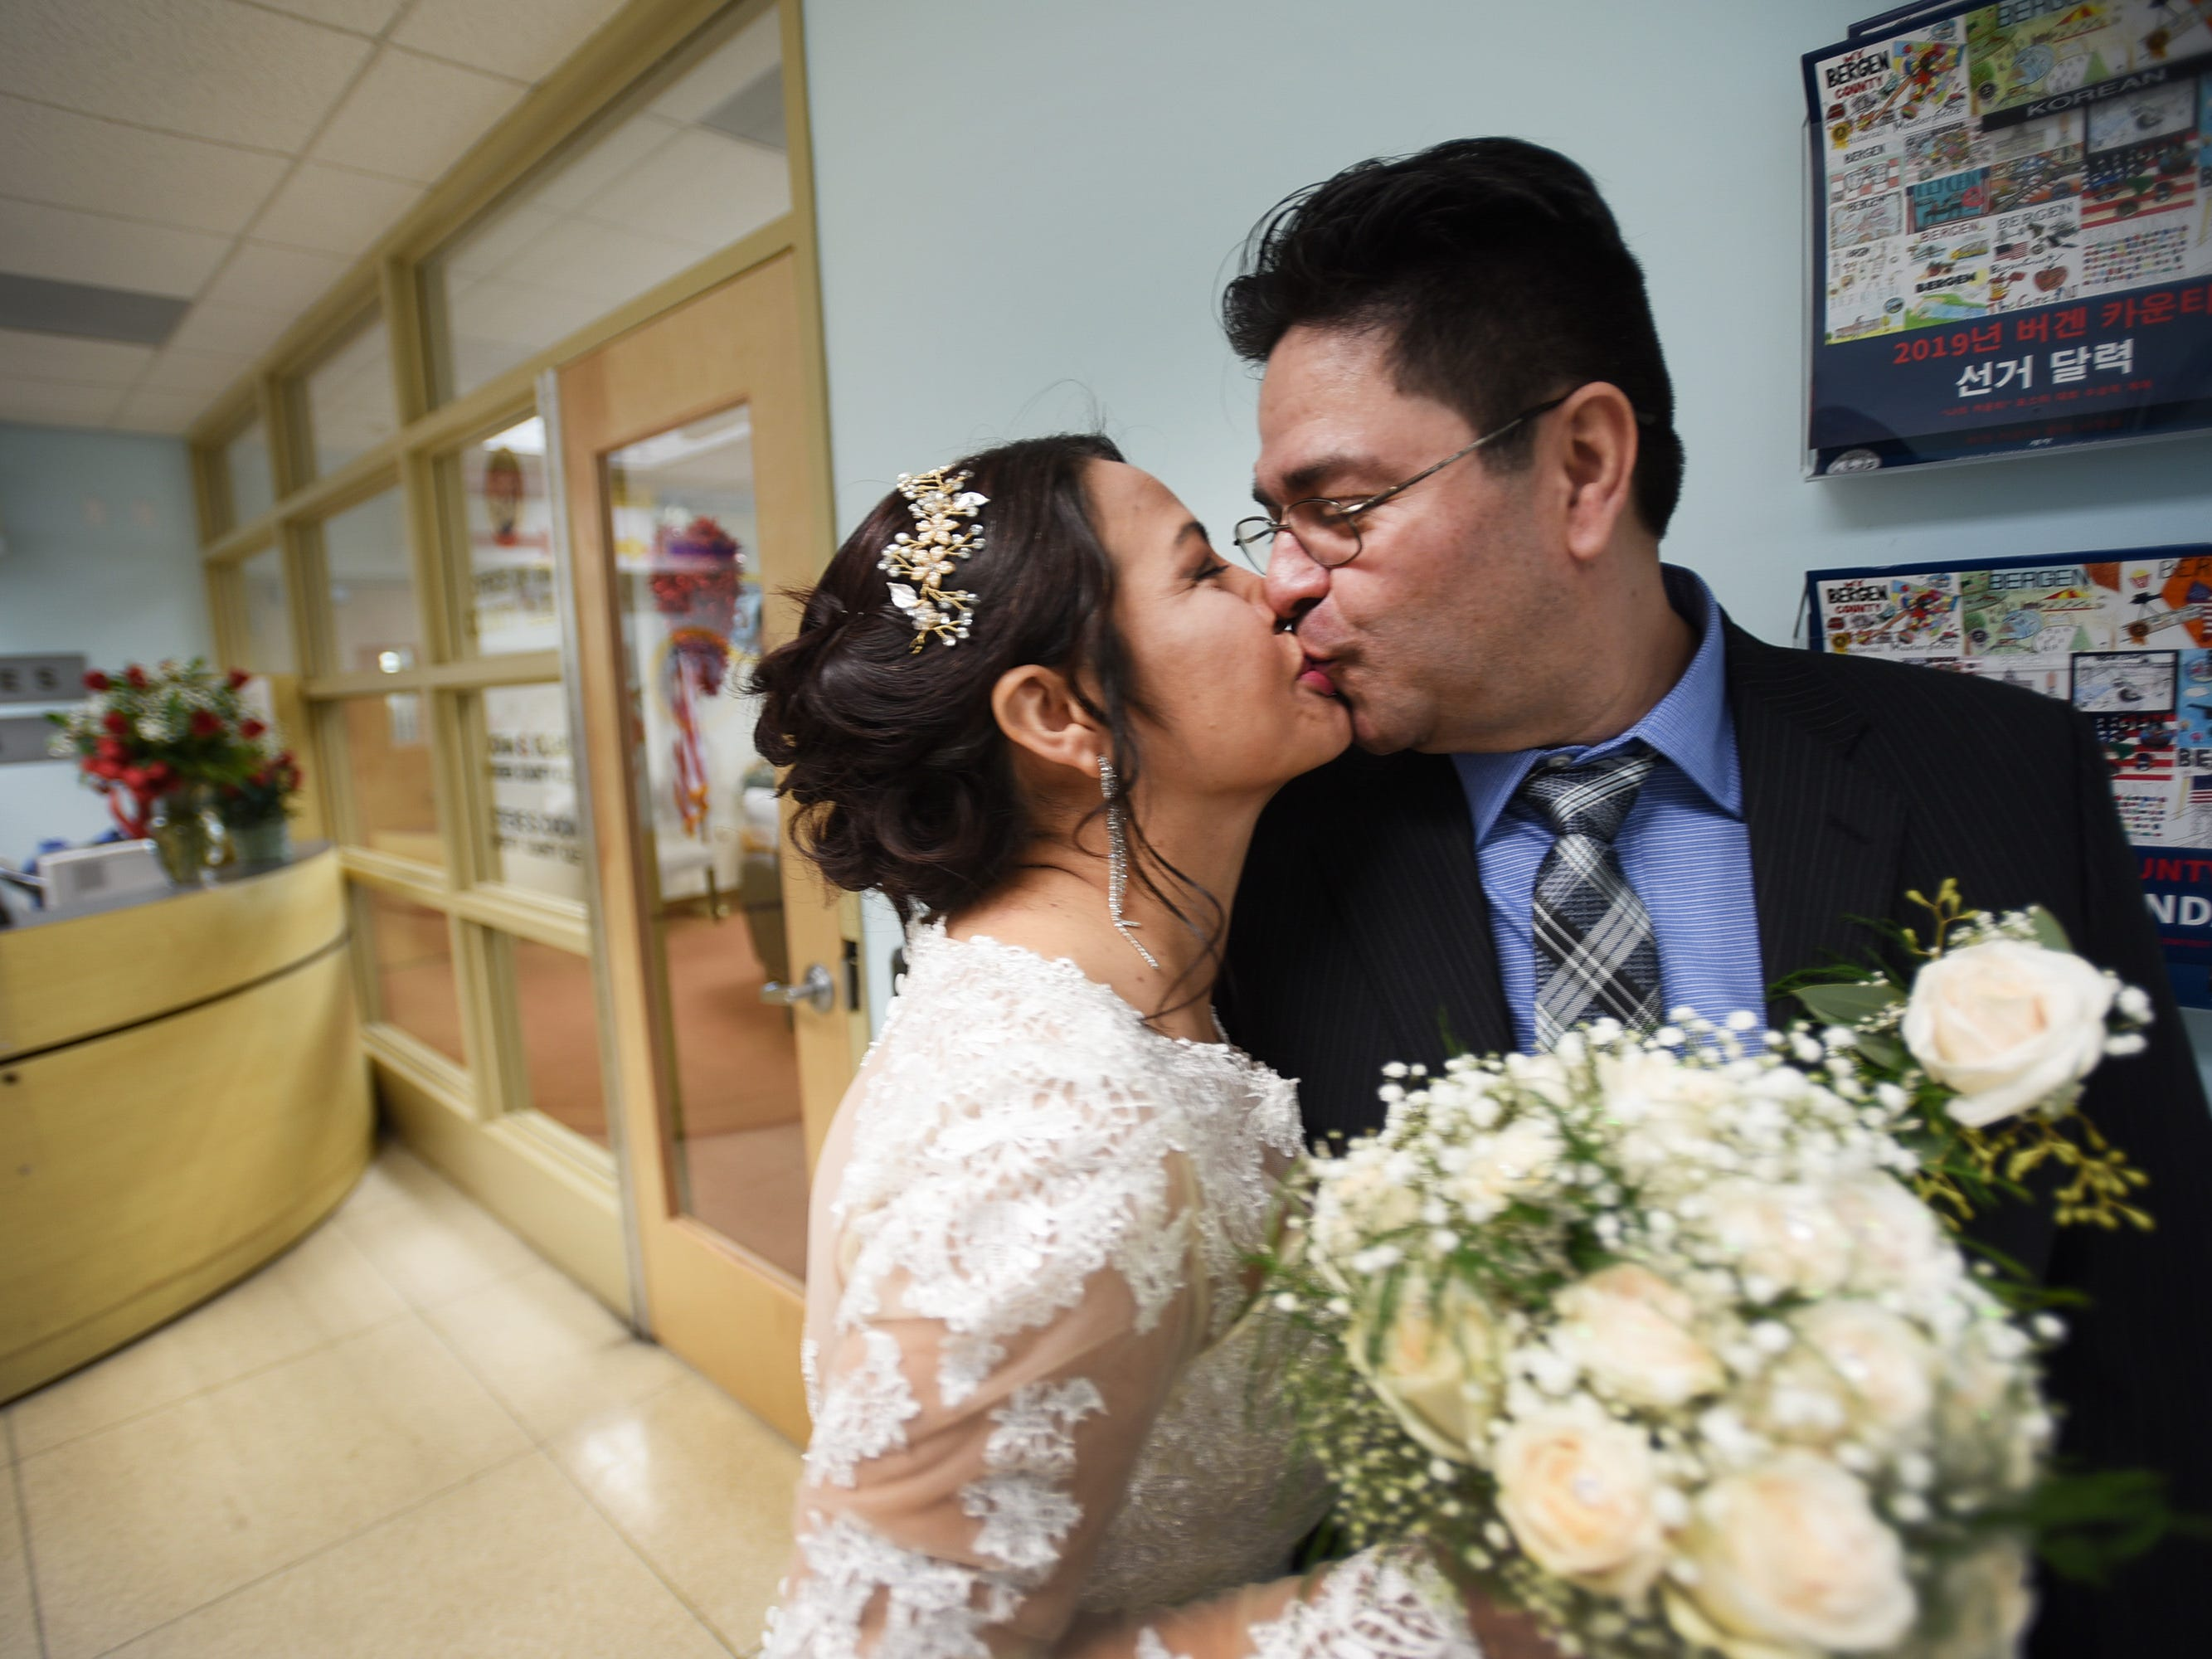 After their marriage ceremony, Gloria Gallego and Alexander Gutierrez of Englewood, kiss together on the hallway outside of Bergen County Clerk's Office, located at Bergen County Plaza in Hackensack on 02/14/19.